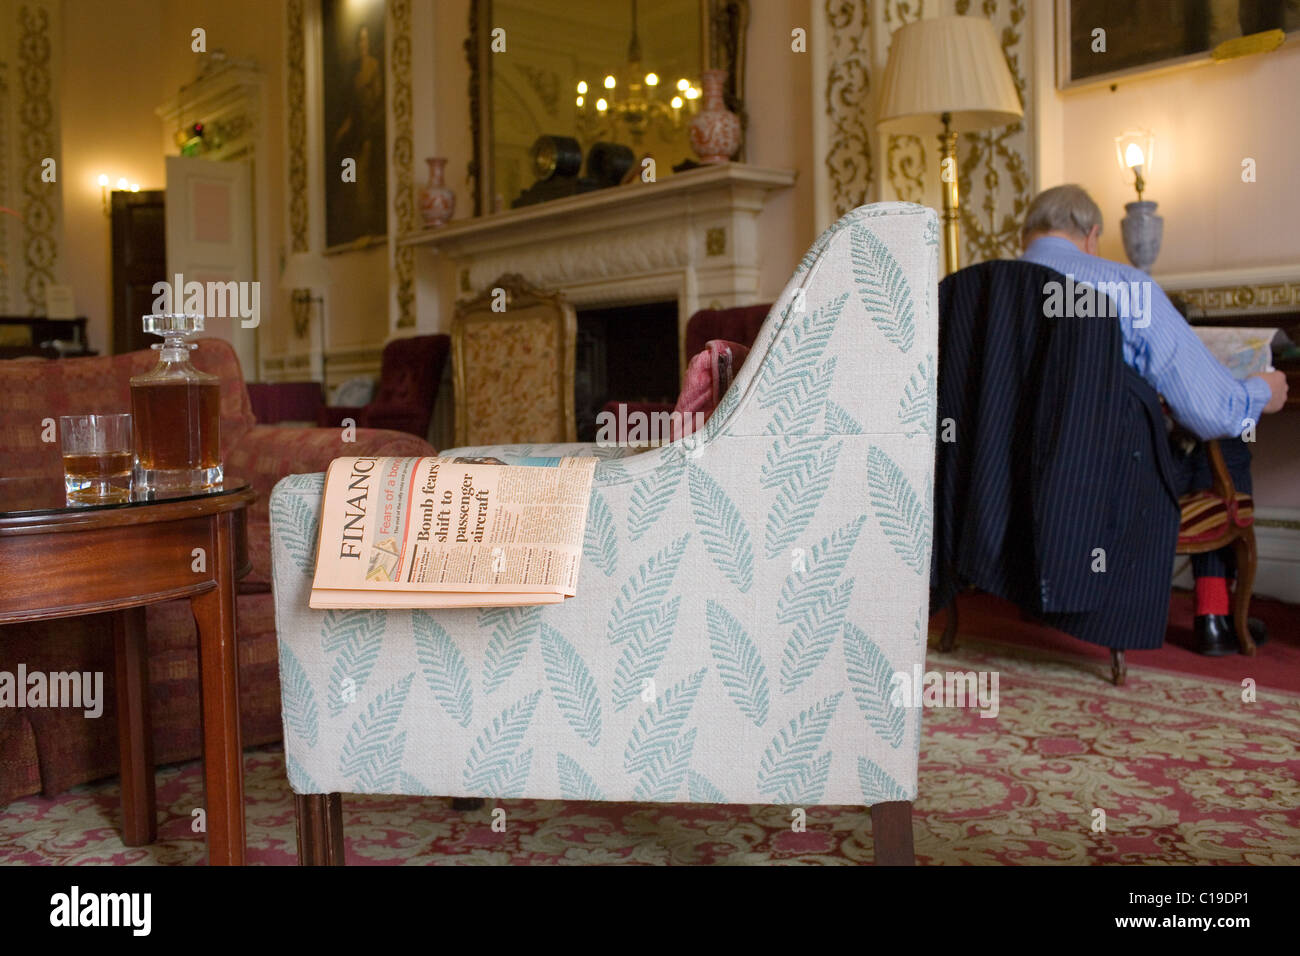 A copy of the Financial Times newspaper on the arm of a chair in the drawing room of a London private members club. - Stock Image